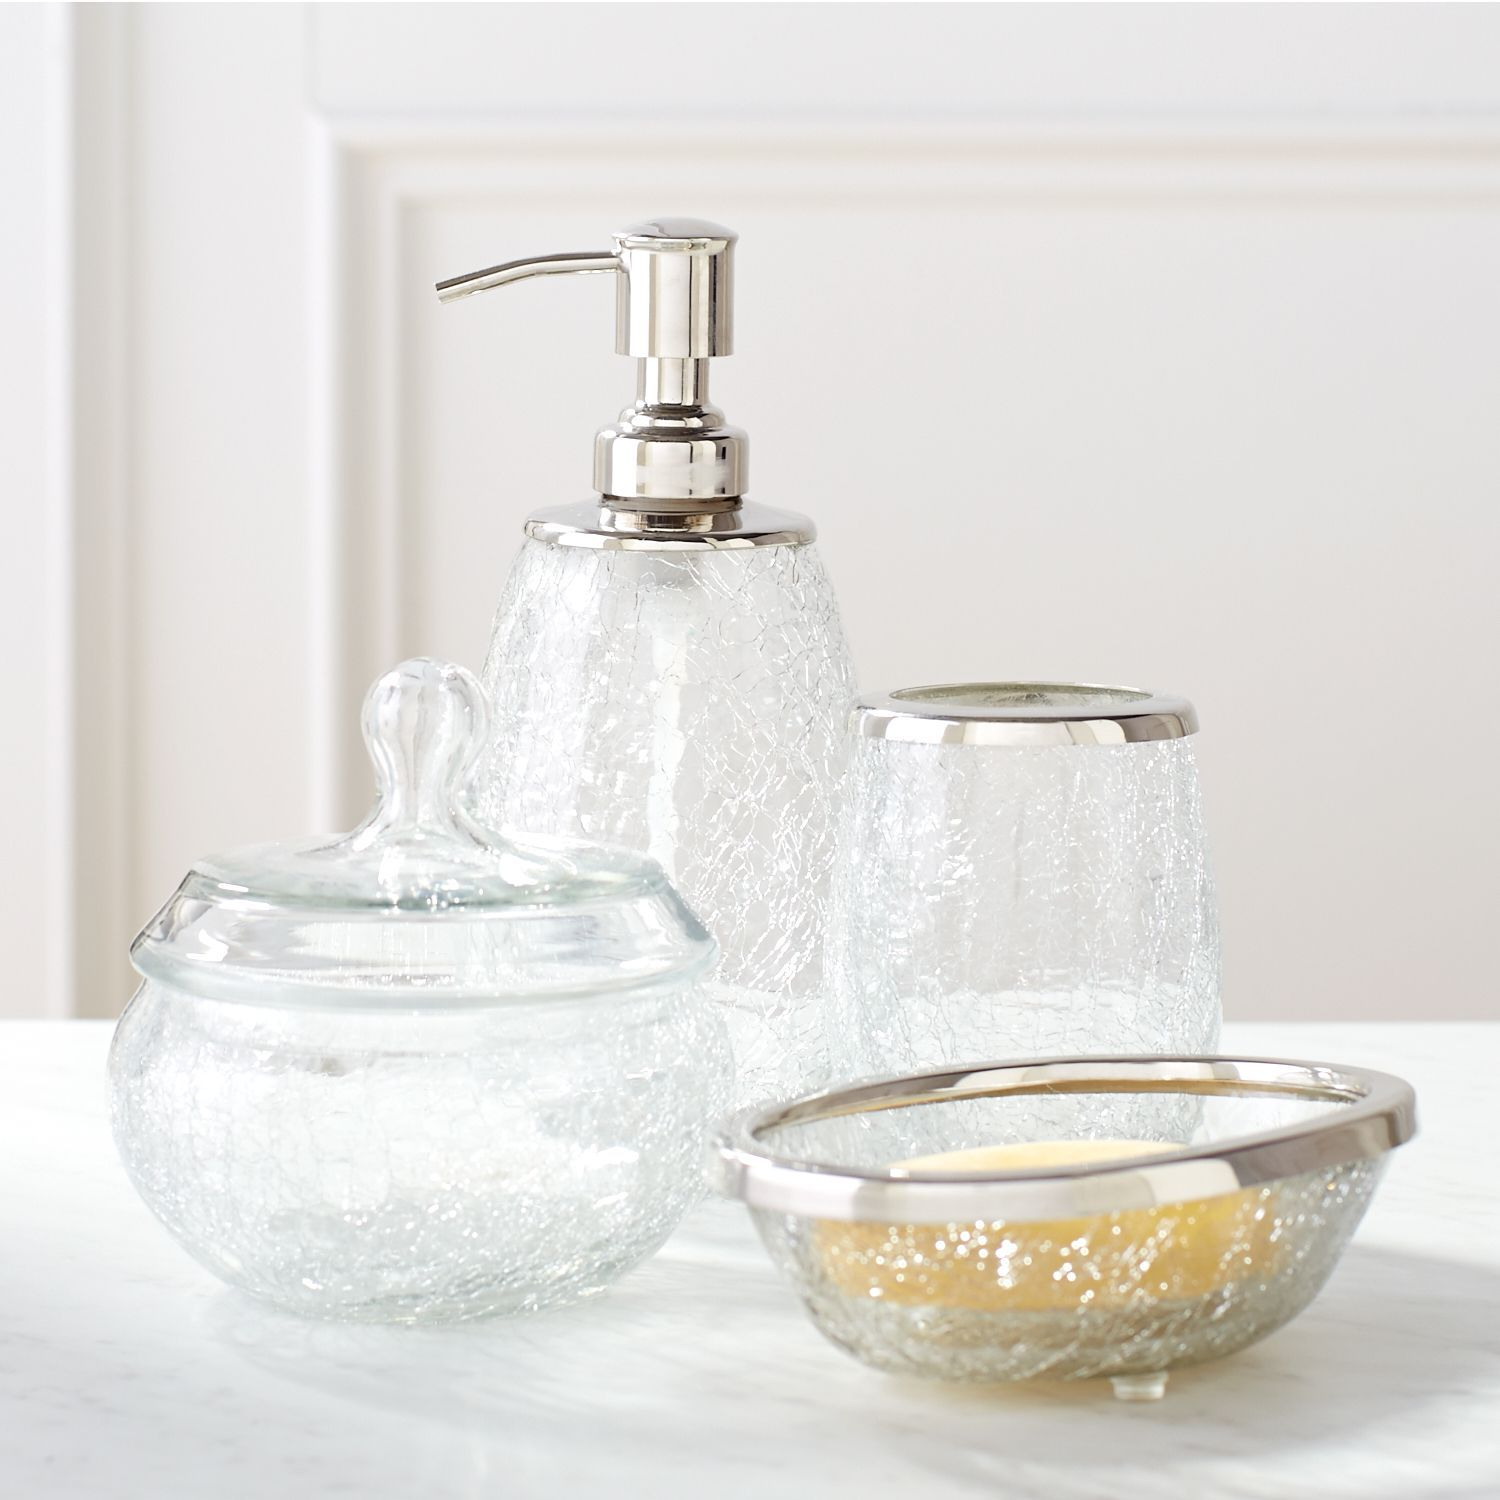 Crackle Glass Bathroom Accessories Products Glass Bathroom Bath